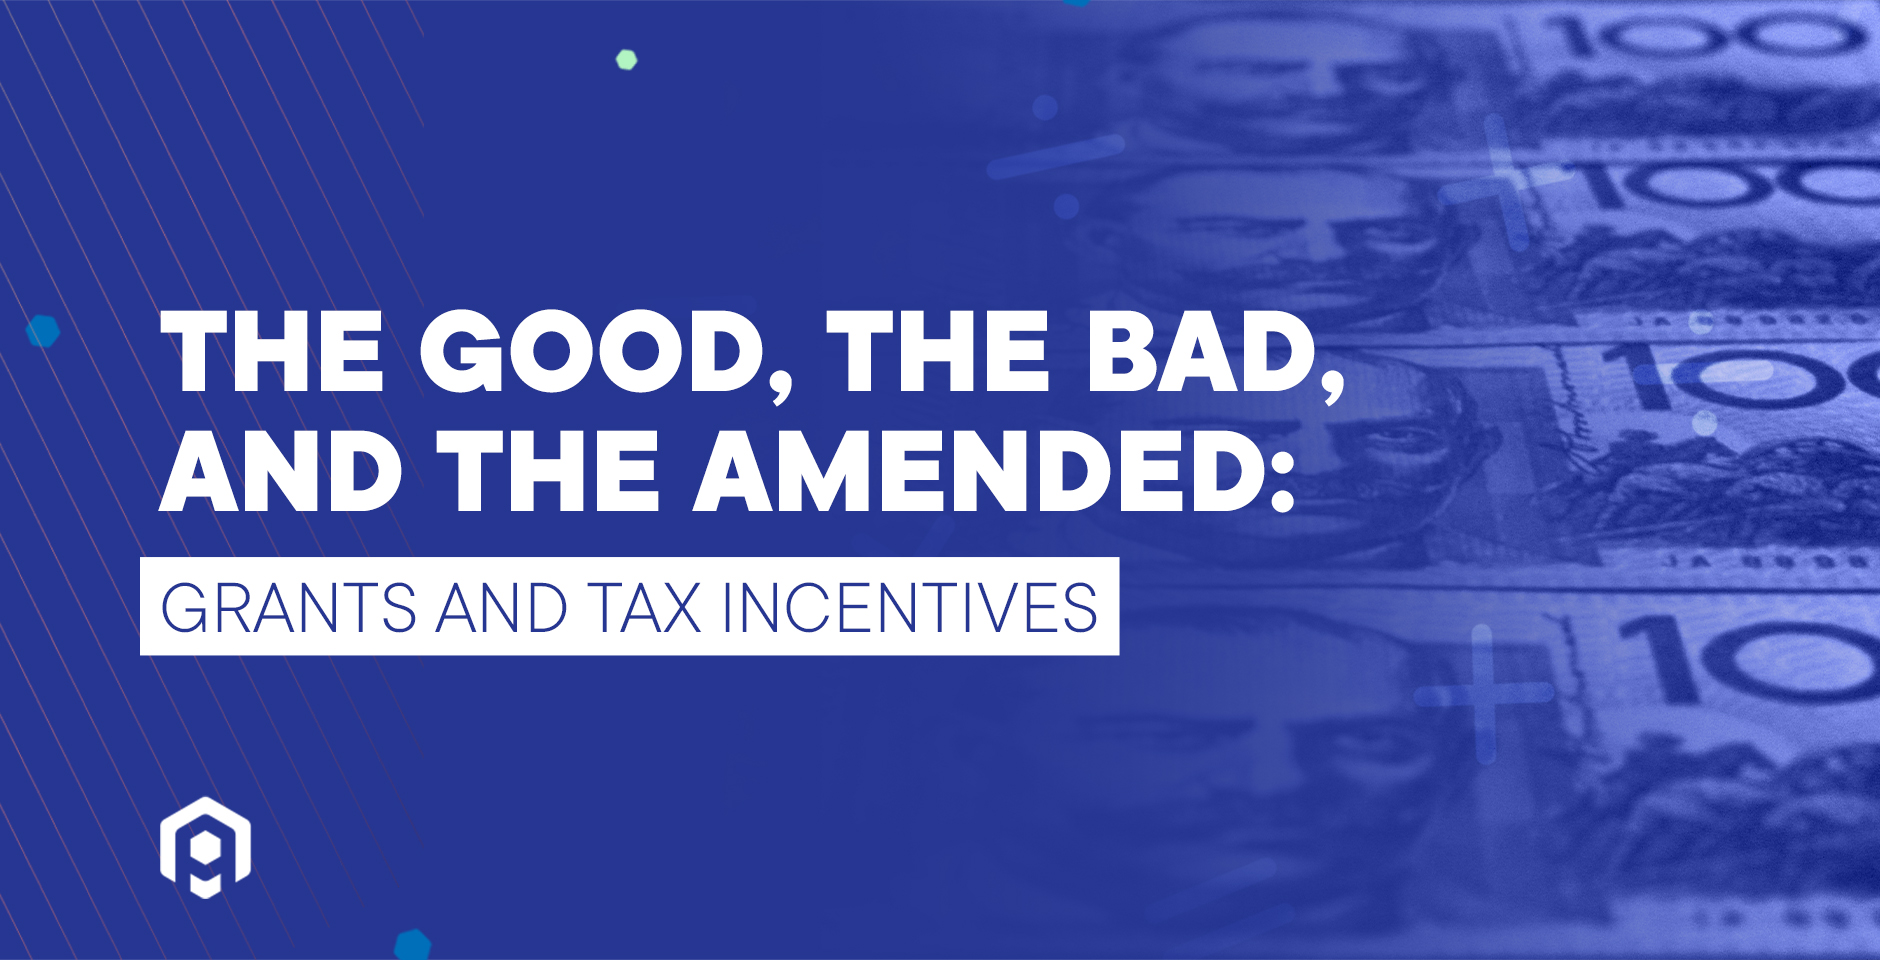 The Good, The Bad, and The Amended: Grants and Tax Incentives